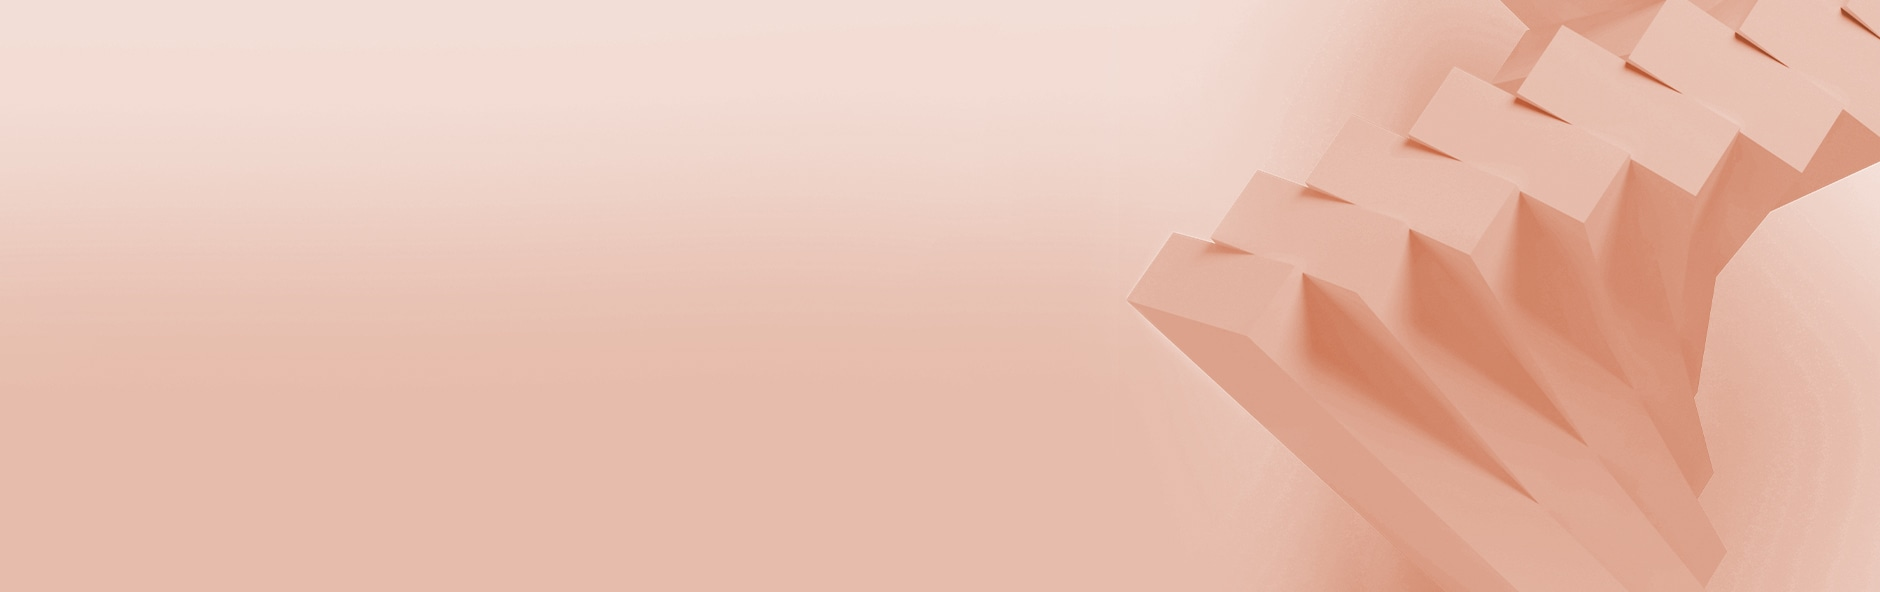 peach background with peach fanned-out rectangular objects